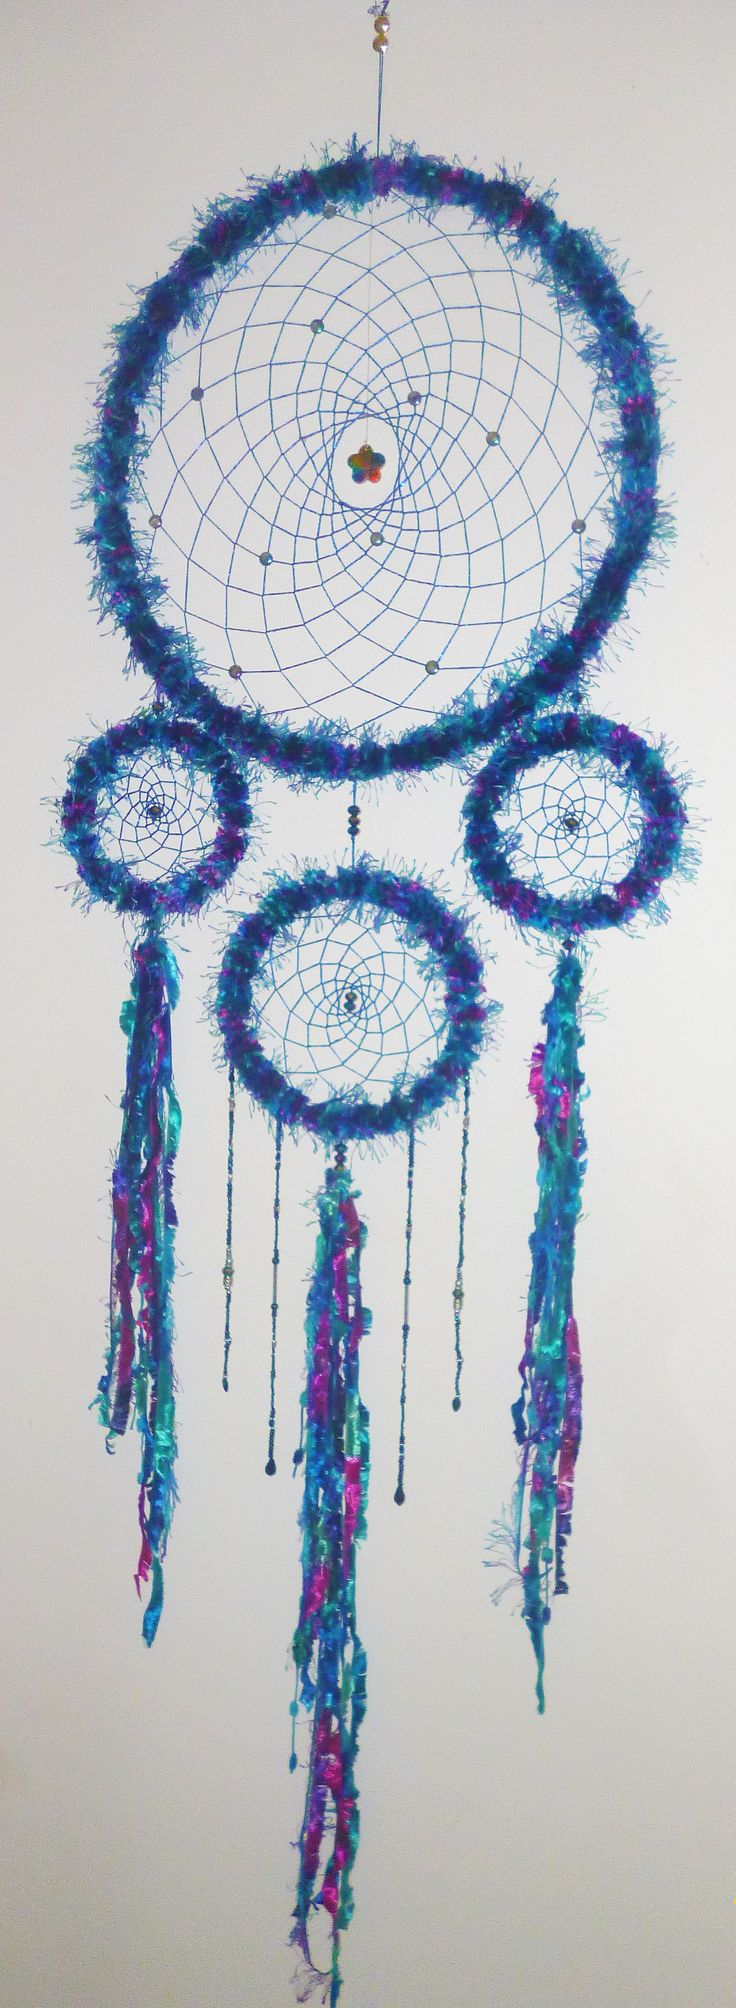 Large dreamcatcher made by Cheri Rose.